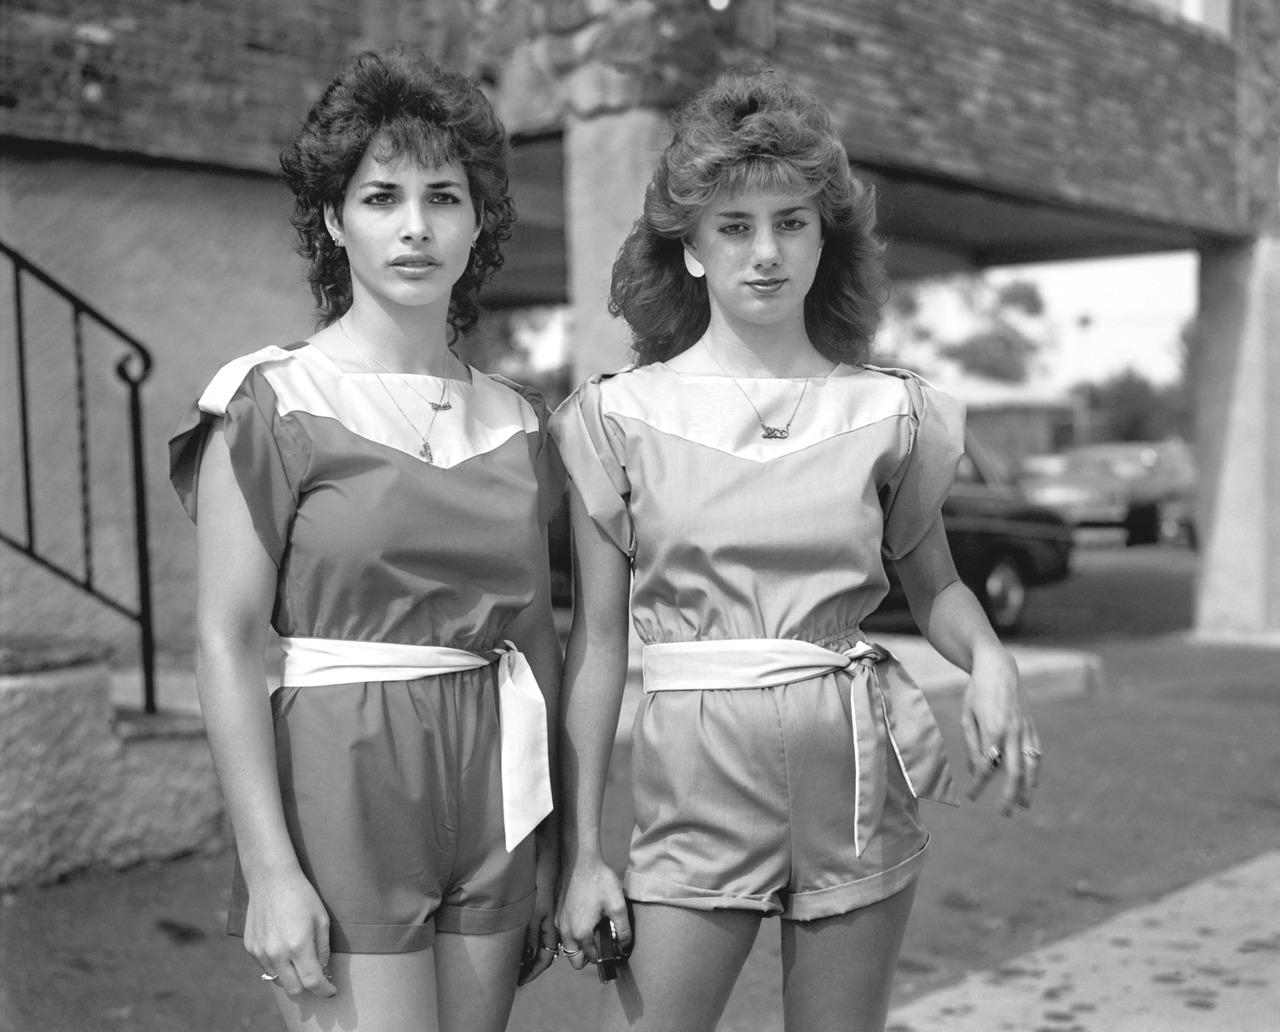 Two young women in matching outfits in front of an open air garage. In the early '80s Staten Island seemed like a world away from Manhattan. In Chrisitine Osinki's newly rediscoved photographs, she reveals a time capsule of the growing borough, caught in a state of limbo between New York City and the rest of America. With a new Kickstarter she hopes to publish a new book of the work. See more here.